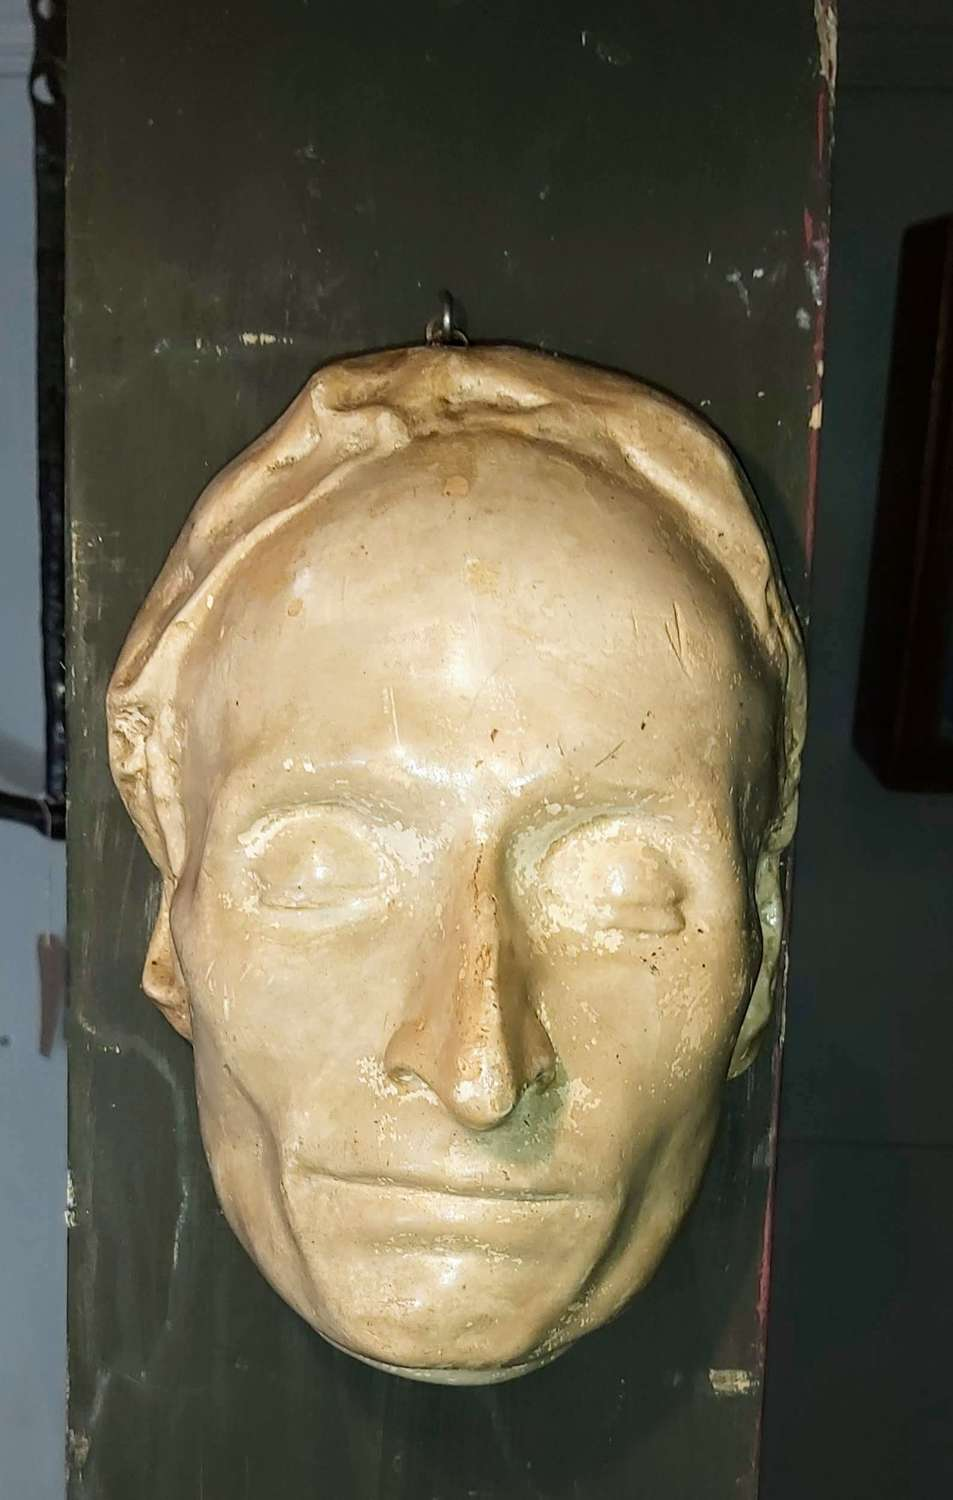 A 18th century death mask of Blaise Pascal